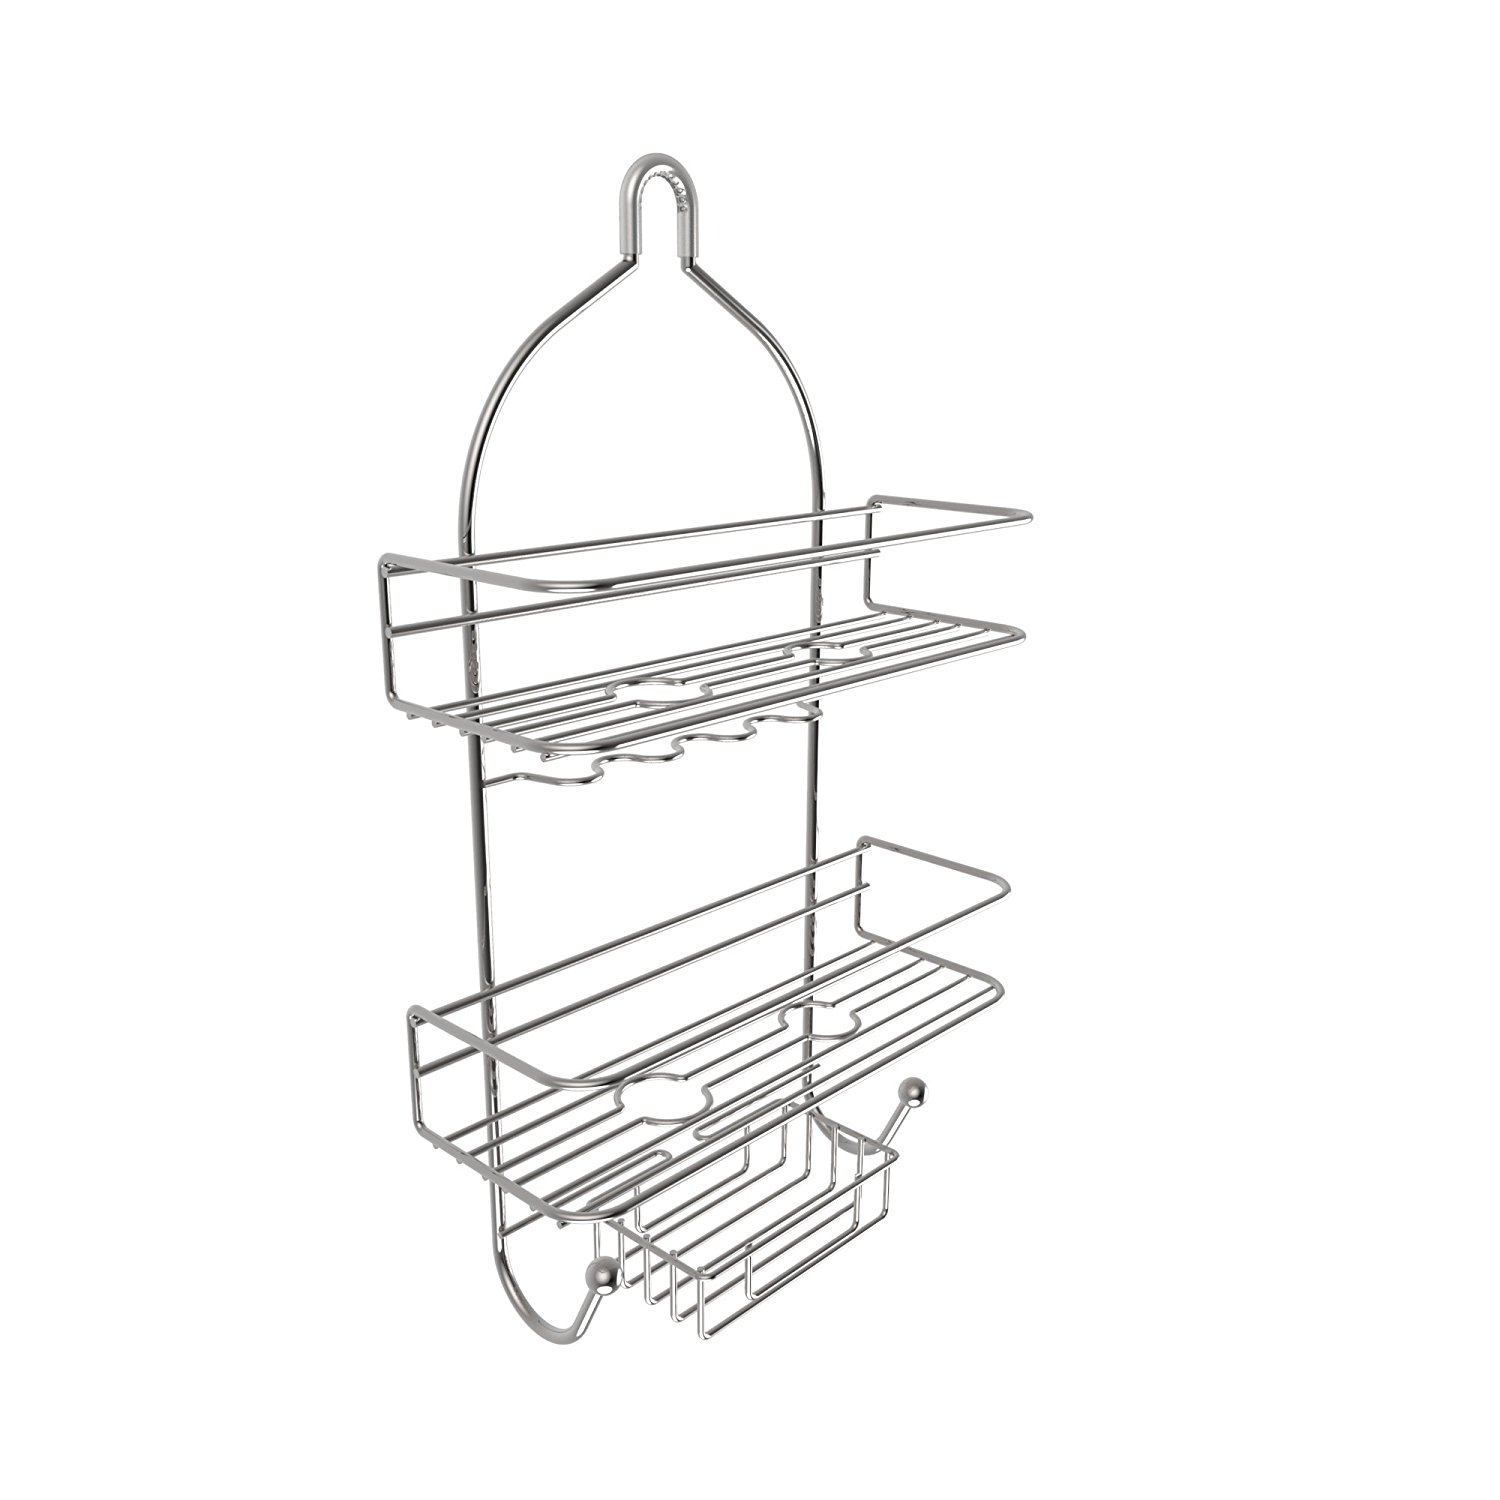 Click here to buy 3-Tier Shower Caddy with Shelves and Hooks-Non Slip Grip Showerhead Bath Organizer with....